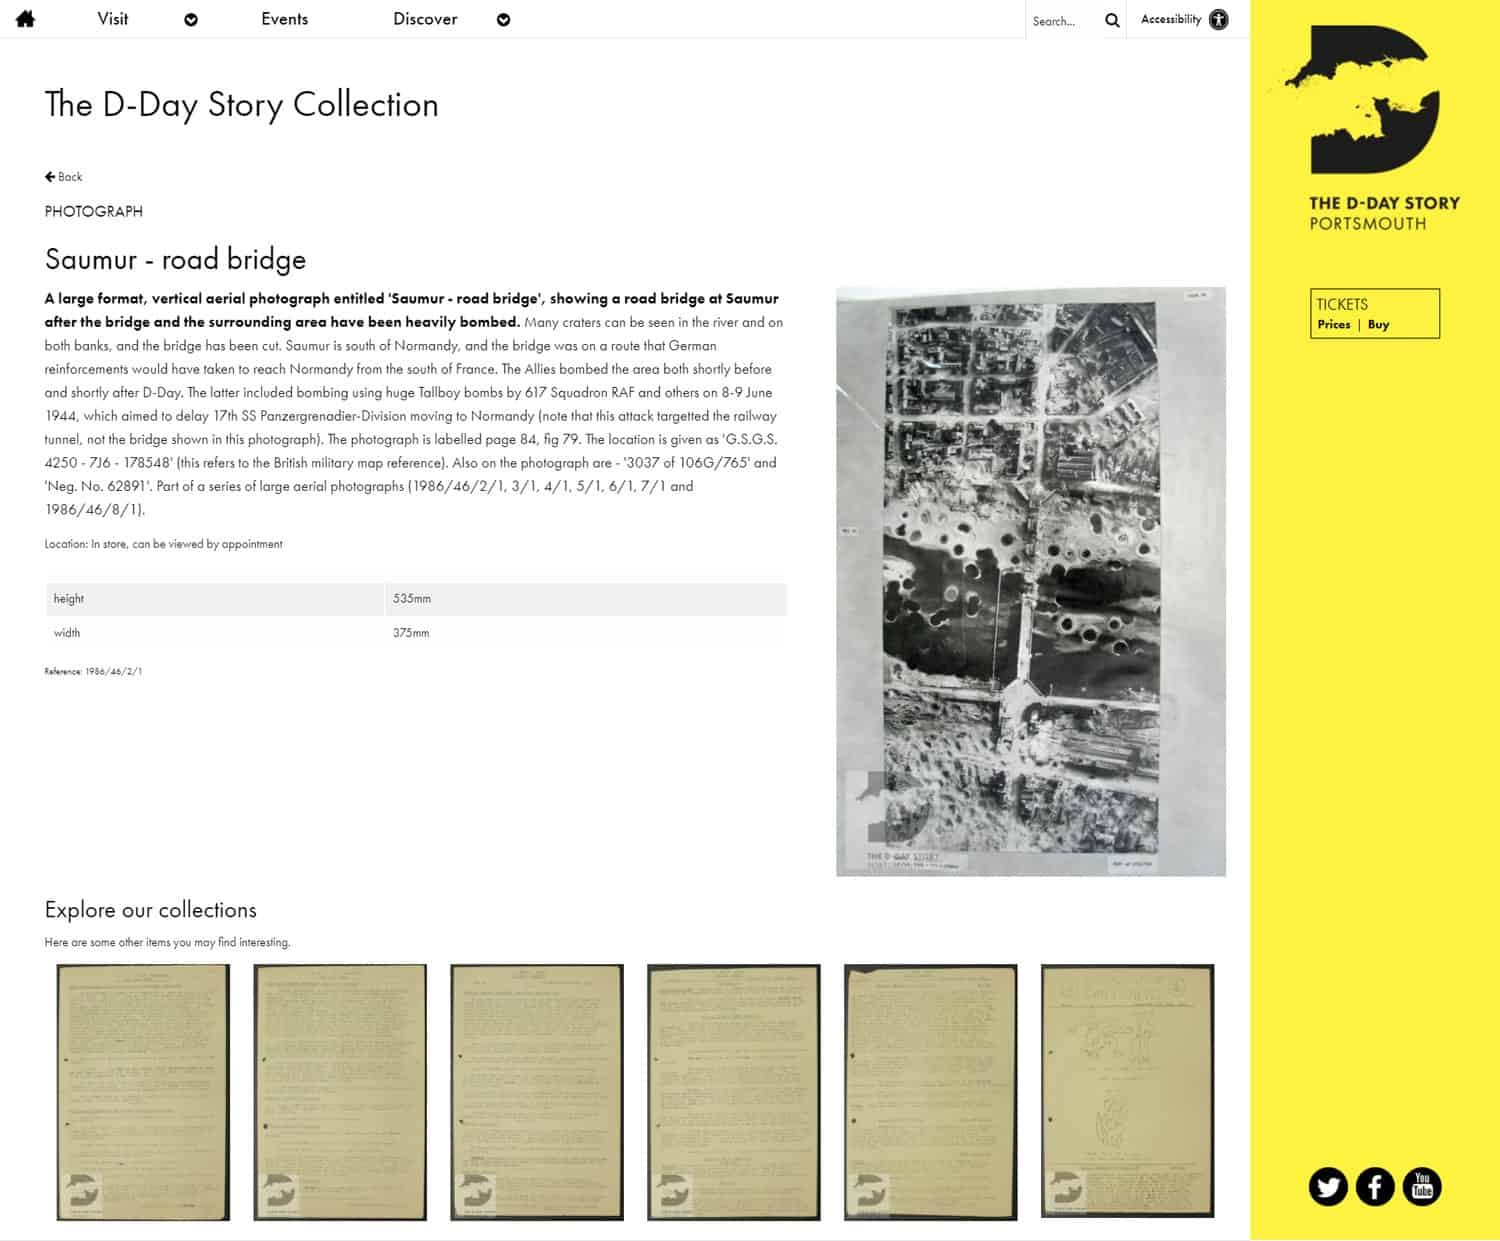 Screenshot of The D-Day Story website - Collection object: Photograph > Saumur - road bridge